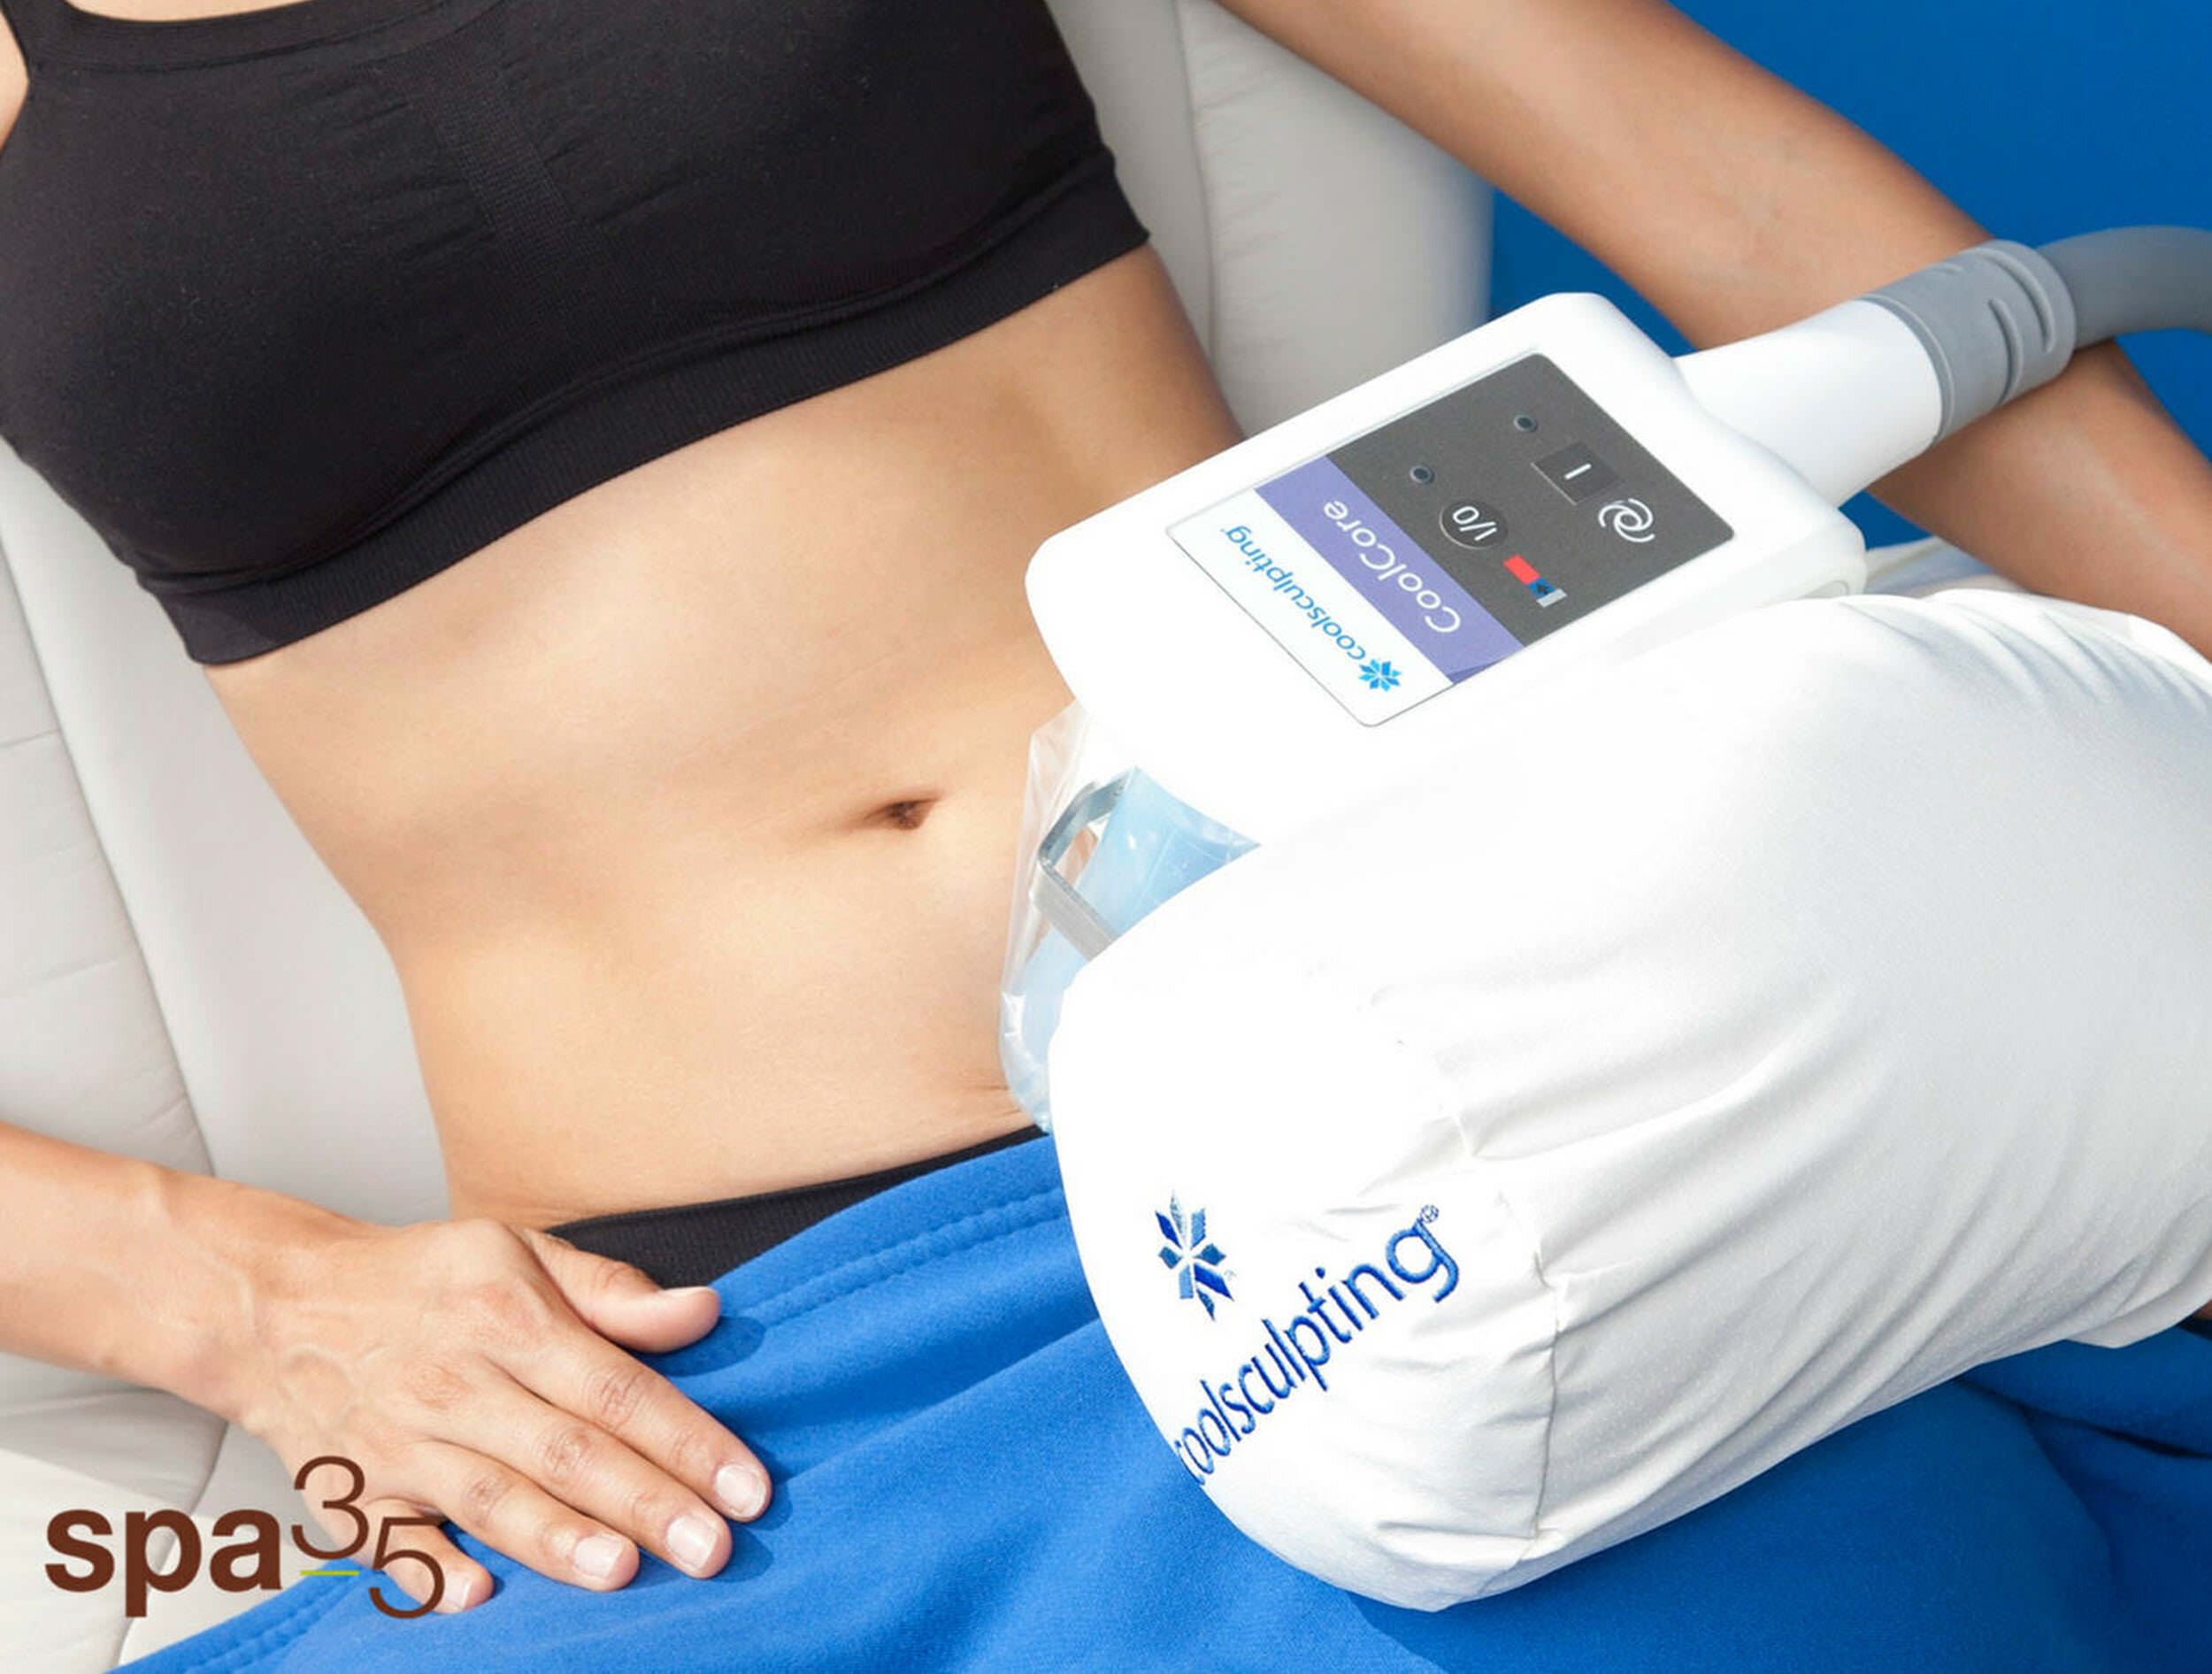 CoolSculpting Fat Removal - Reduce Love Handles & More.No Needles, No Surgery